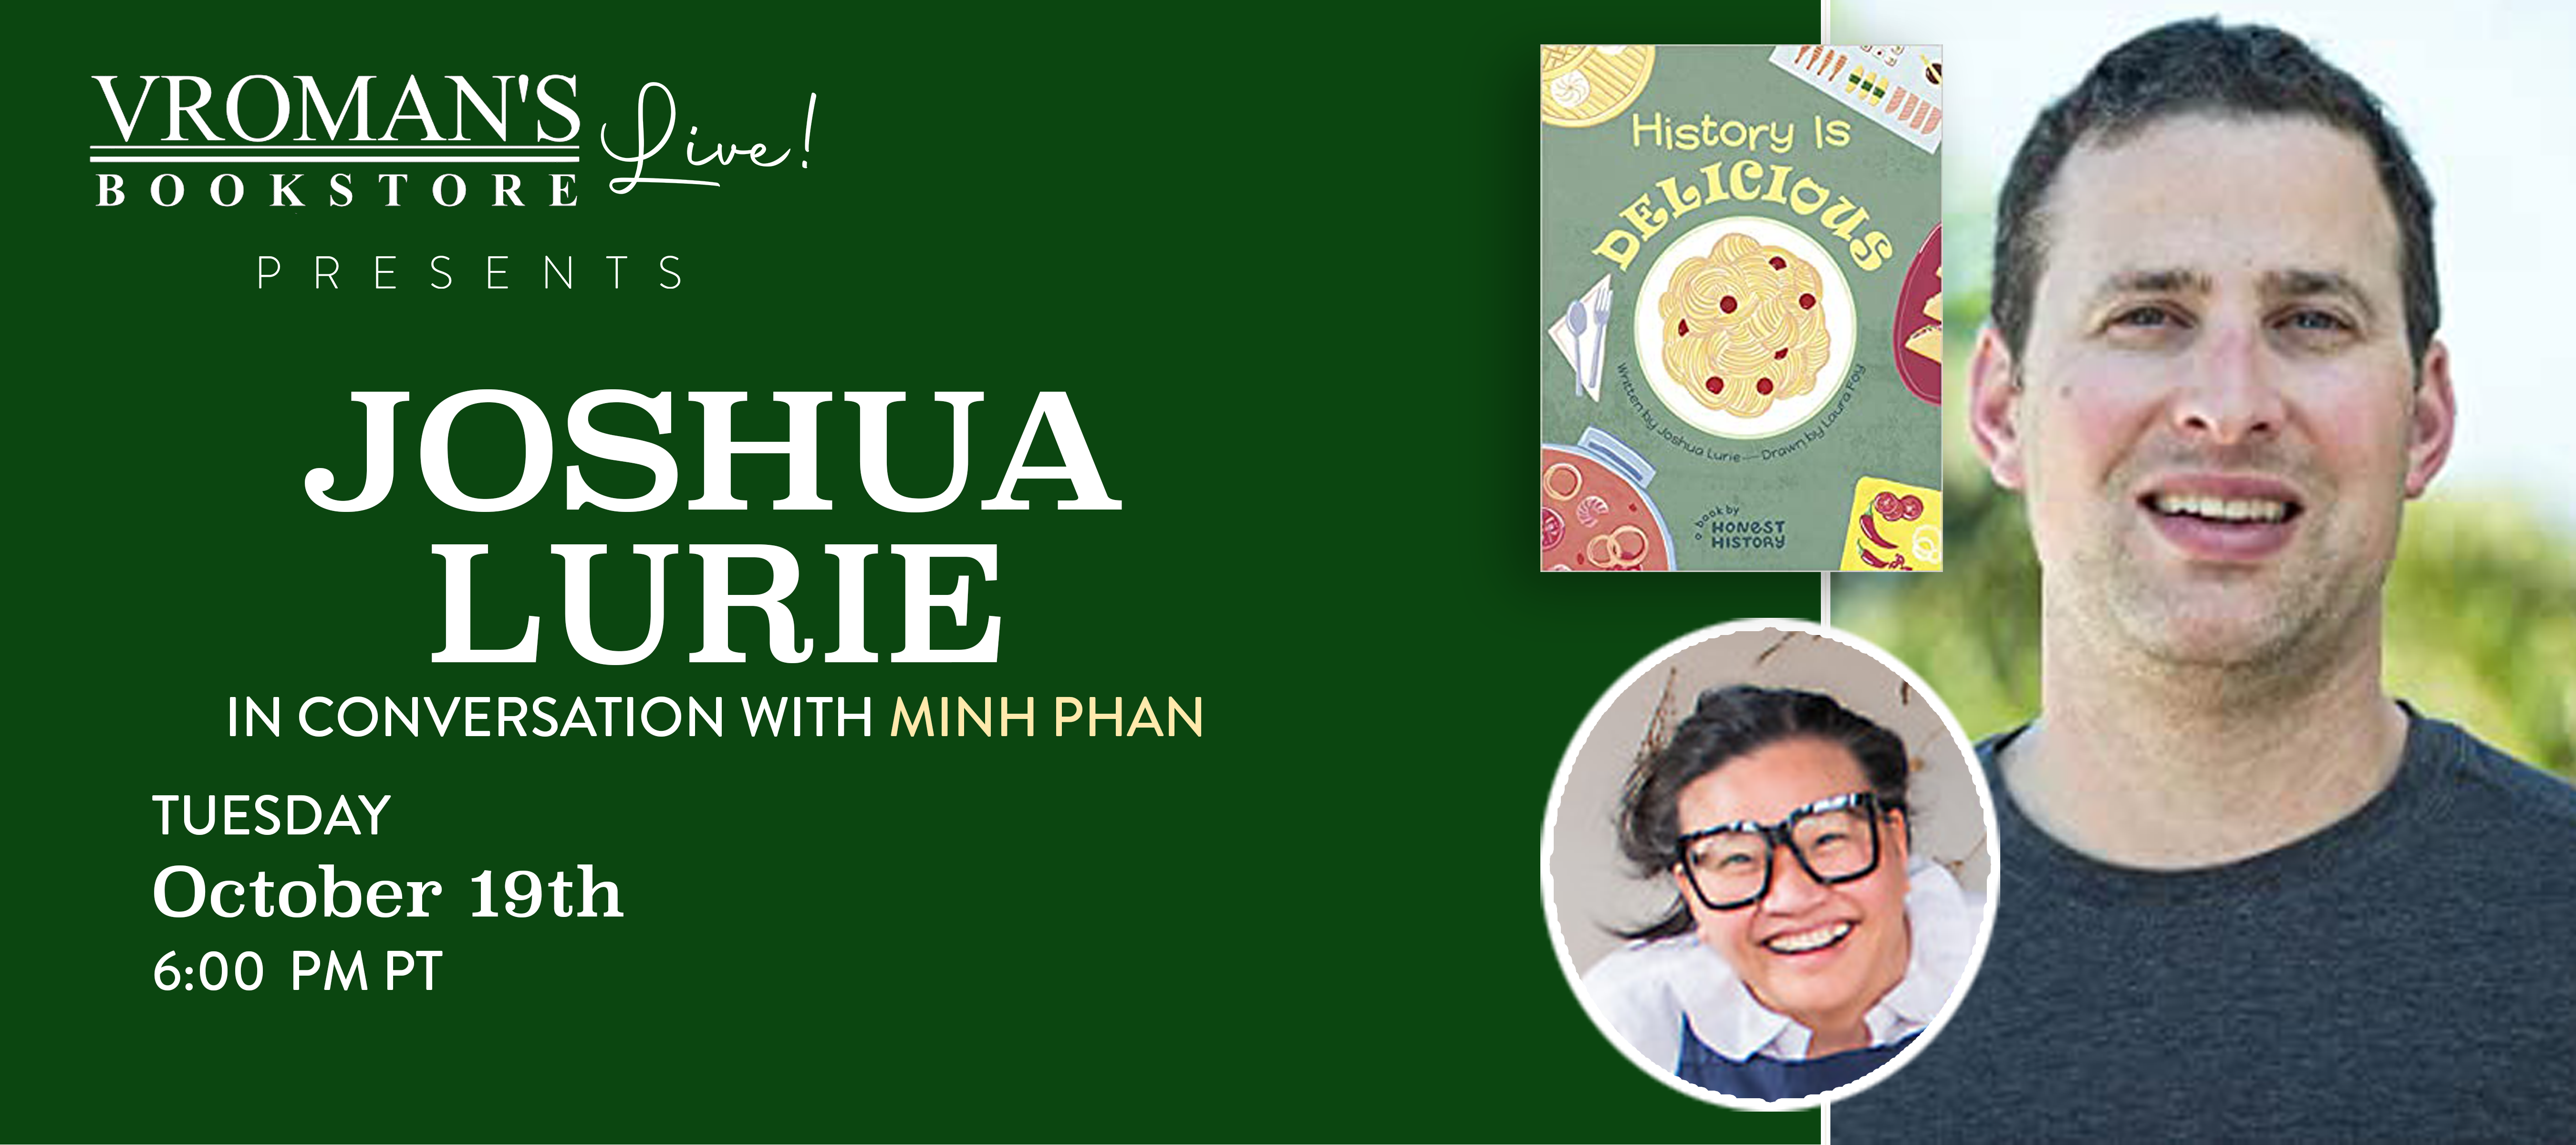 Image of green banner with details for event on Tuesday, October 19, 6pm  Joshua Lurie, in conversation with Minh Phan, discusses History is Delicious